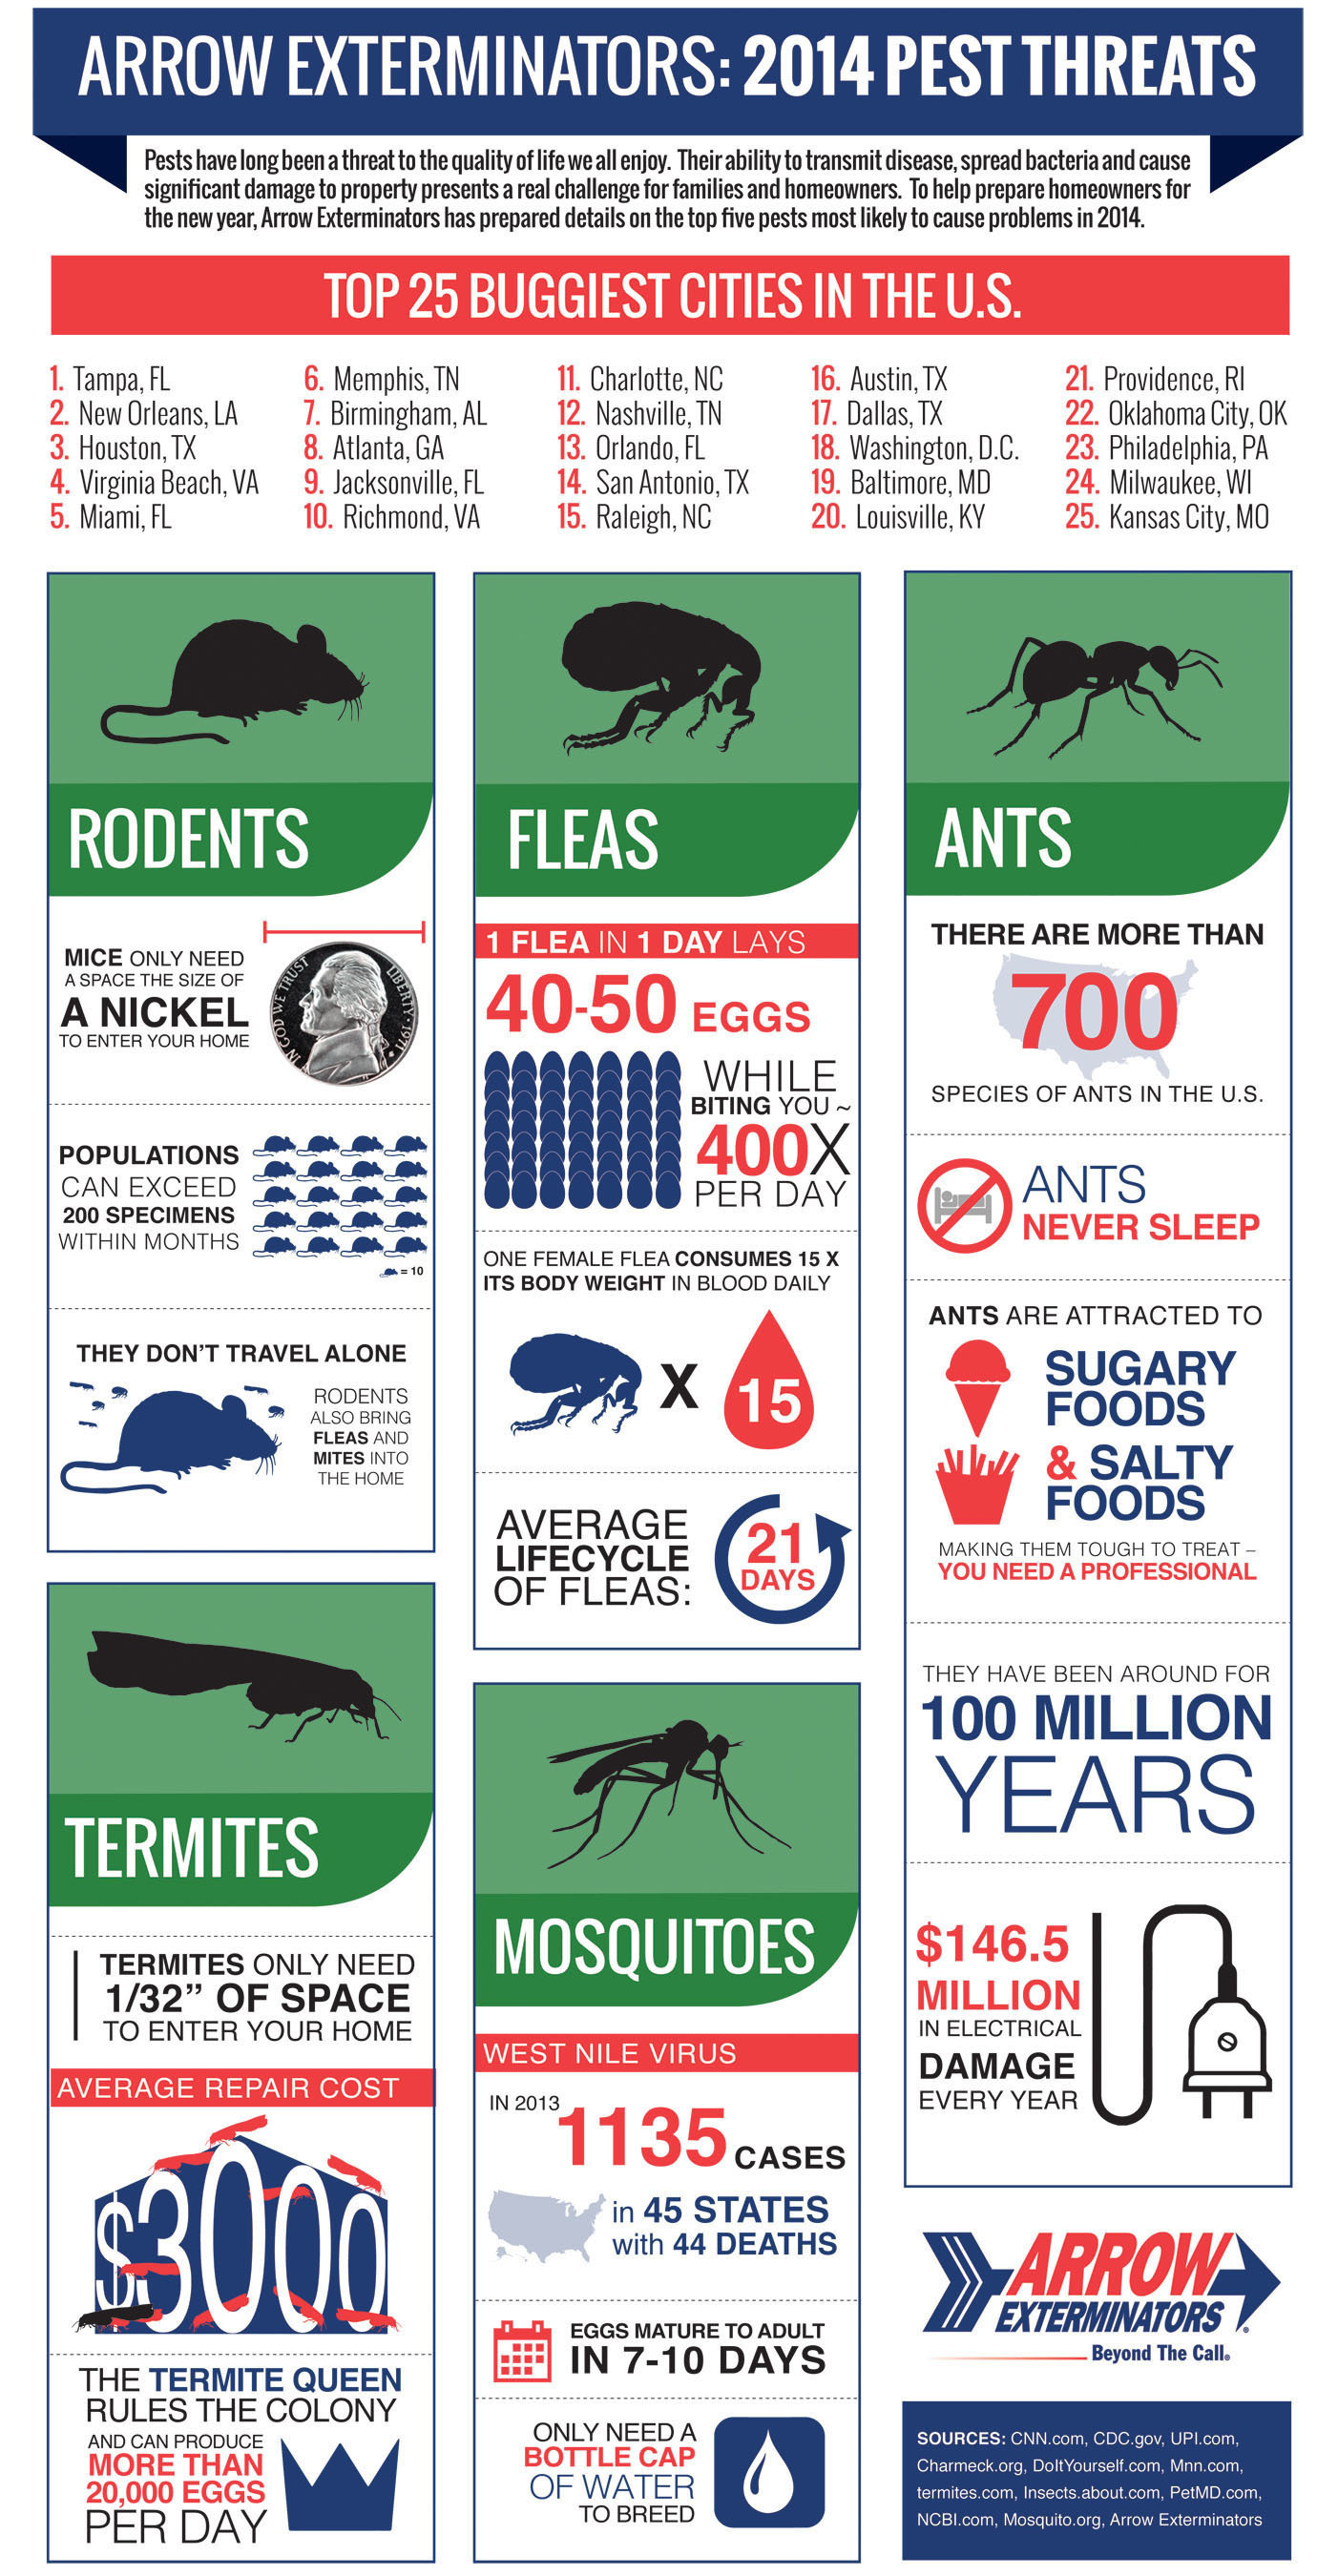 Arrow Exterminators: 2014 Pest Threats